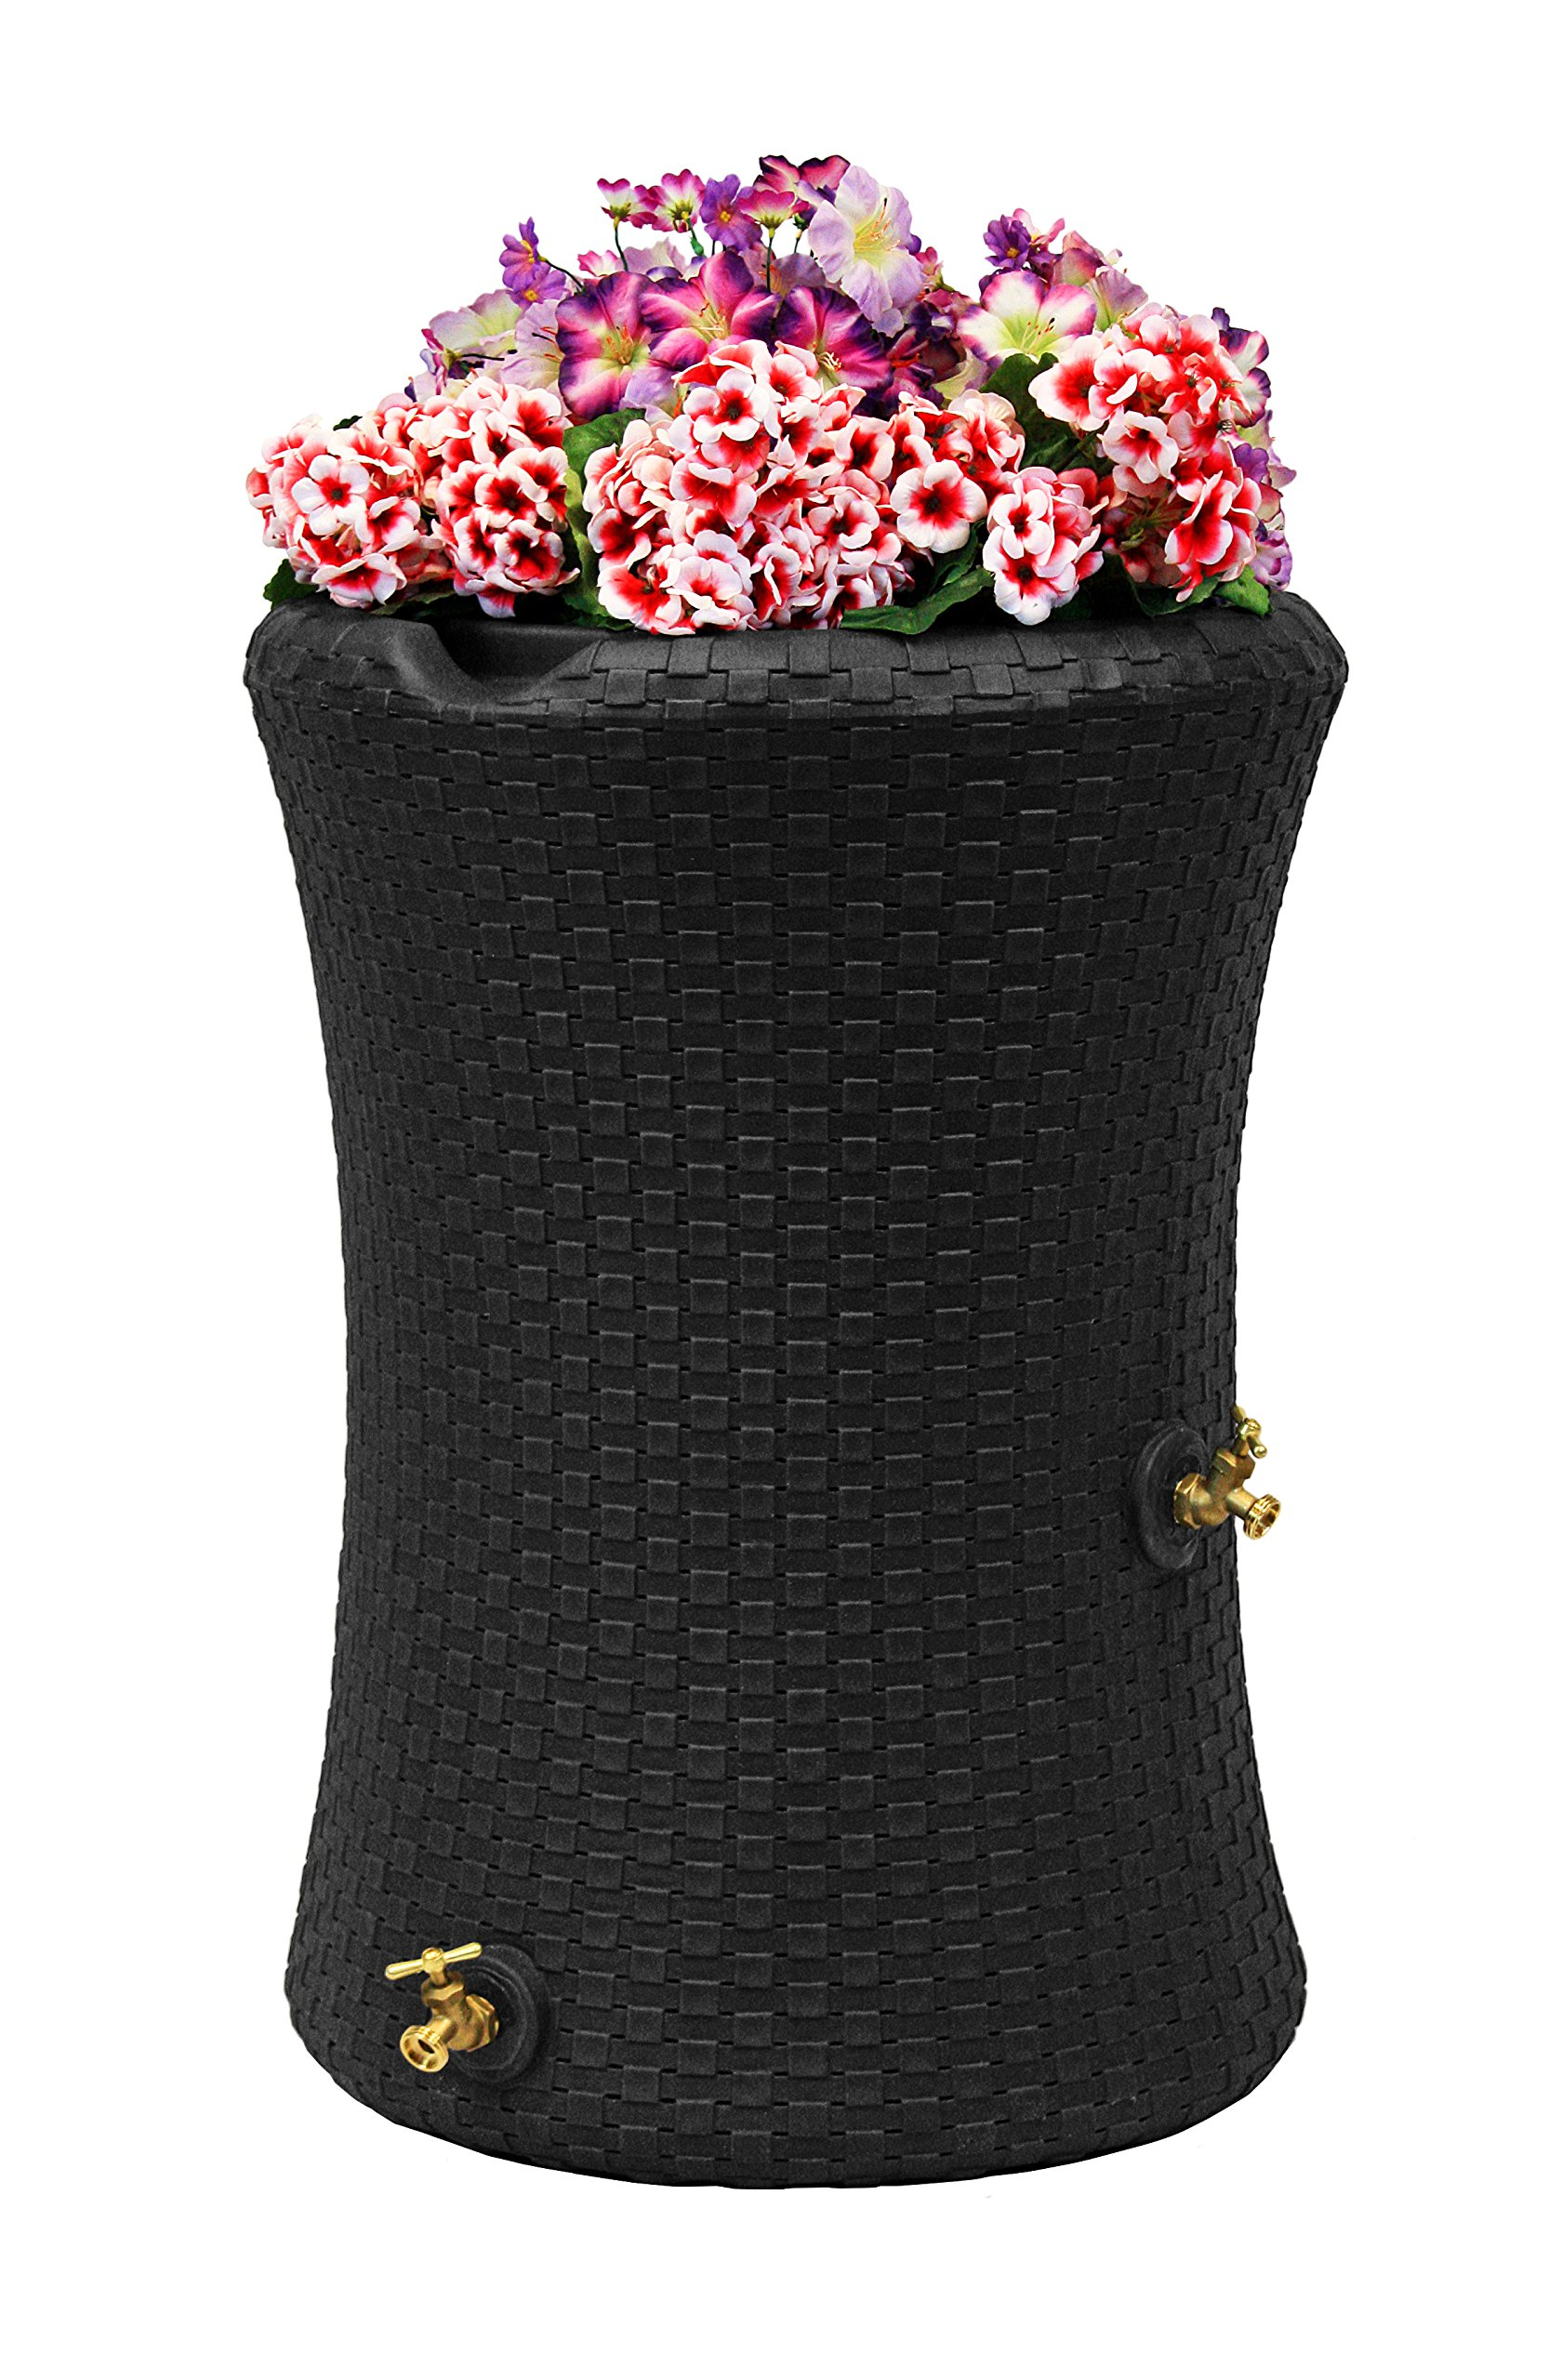 Good Ideas IMP-N50-BLK Impressions Nantucket Rain Saver Rain Barrel, 50 Gallon, Black by Good Ideas